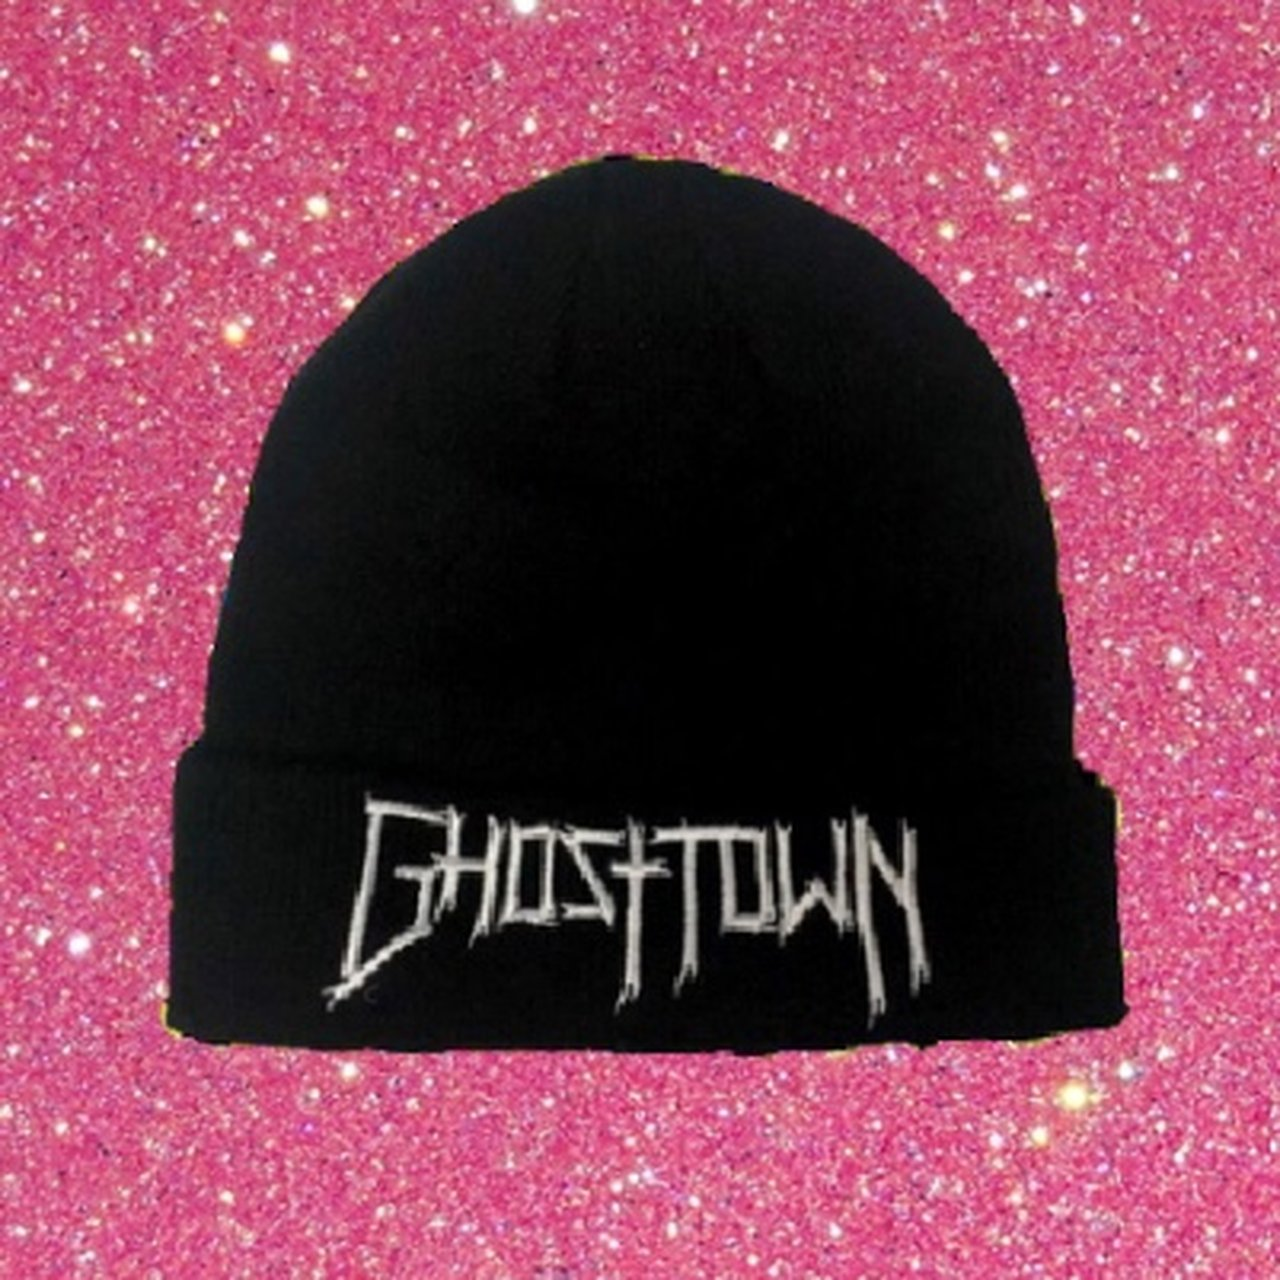 0e539f28fb8 👻GHOST TOWN BEANIE💀 Great Ghost Town beanie which is I m - Depop